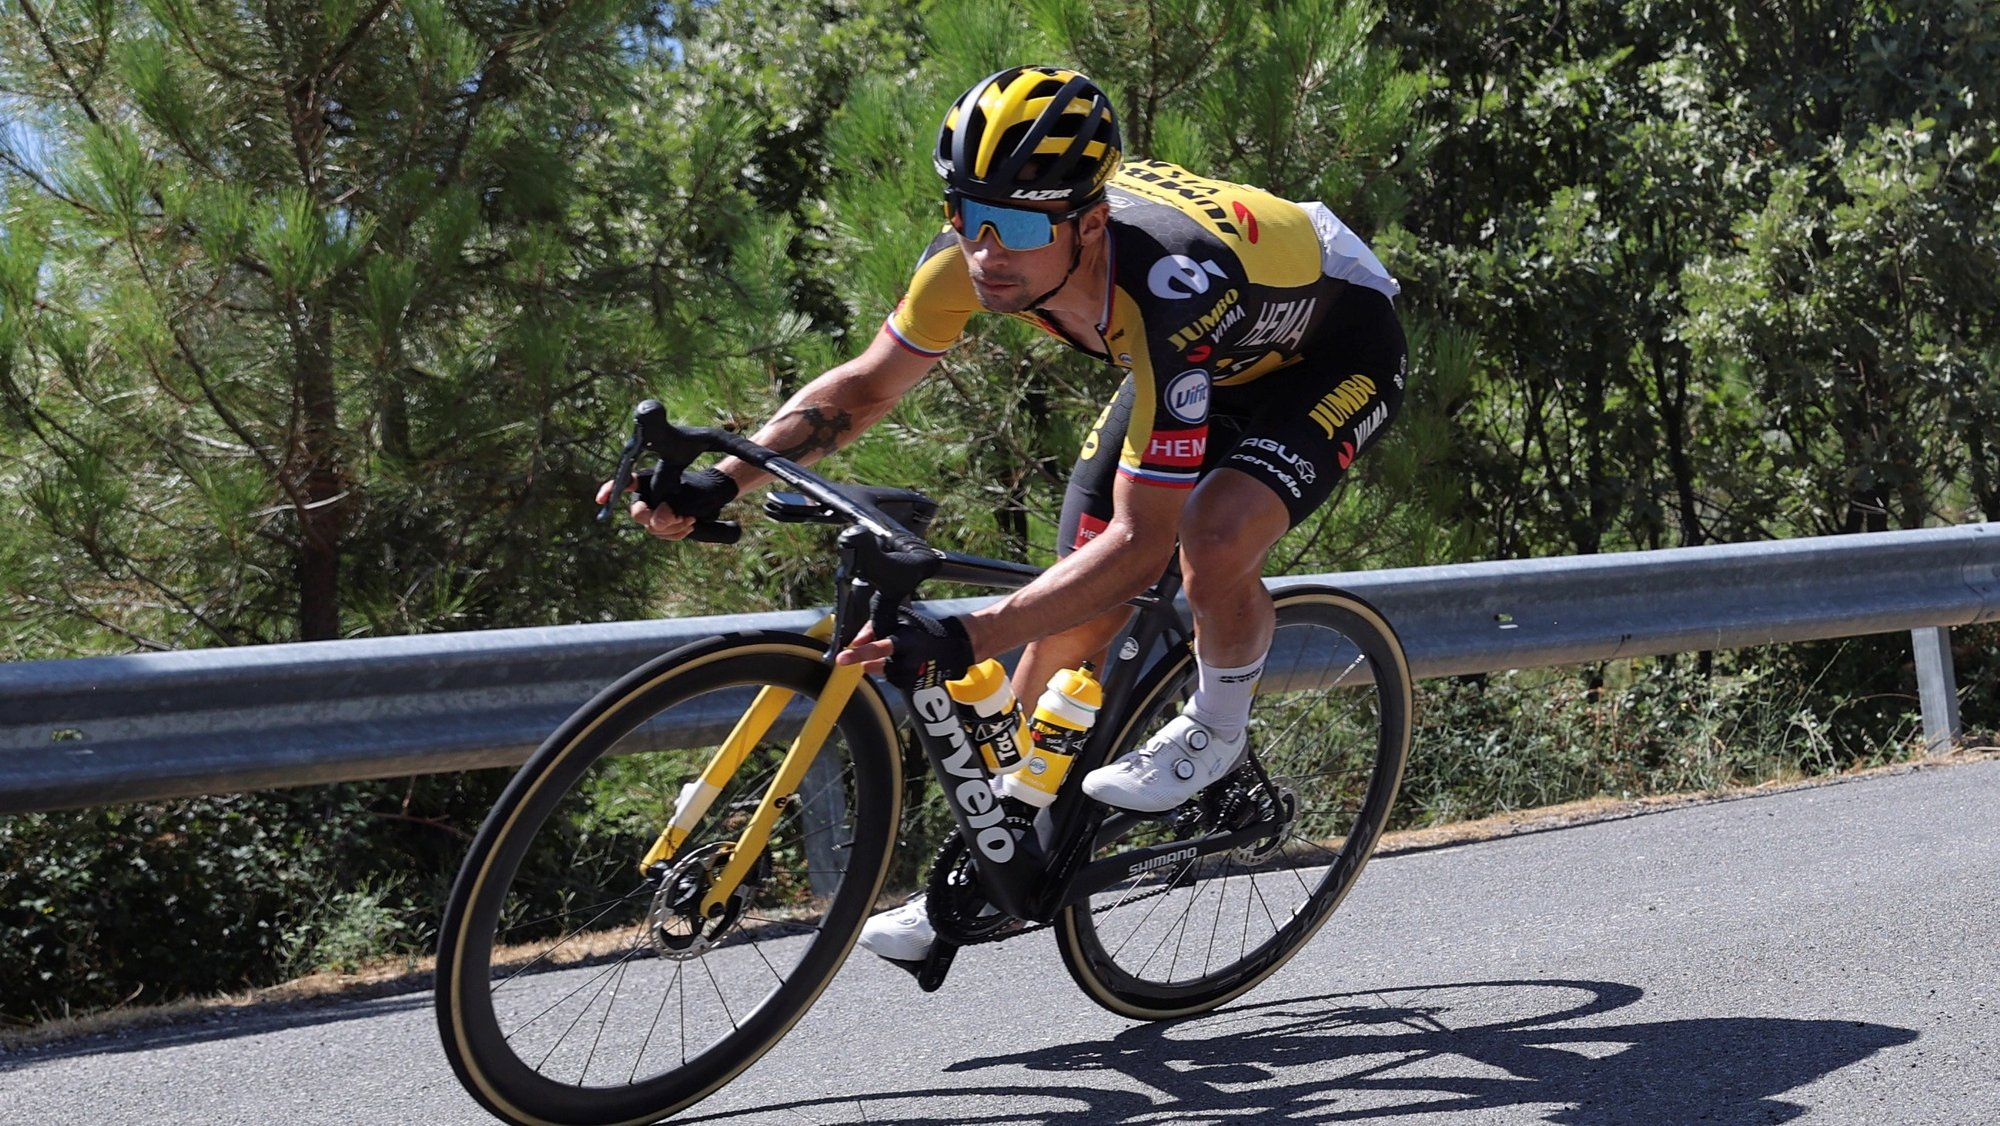 epa09435181 Slovenian rider Primoz Roglic in action during the 15th stage of the Spanish Cycling Vuelta, a 197.5 km-long race between Navalmoral de la Mata (Caceres) and El Barraco (Avila), in Navalmoral de la Mata (Caceres), Spain, 29 August 2021.  EPA/Manuel Bruque